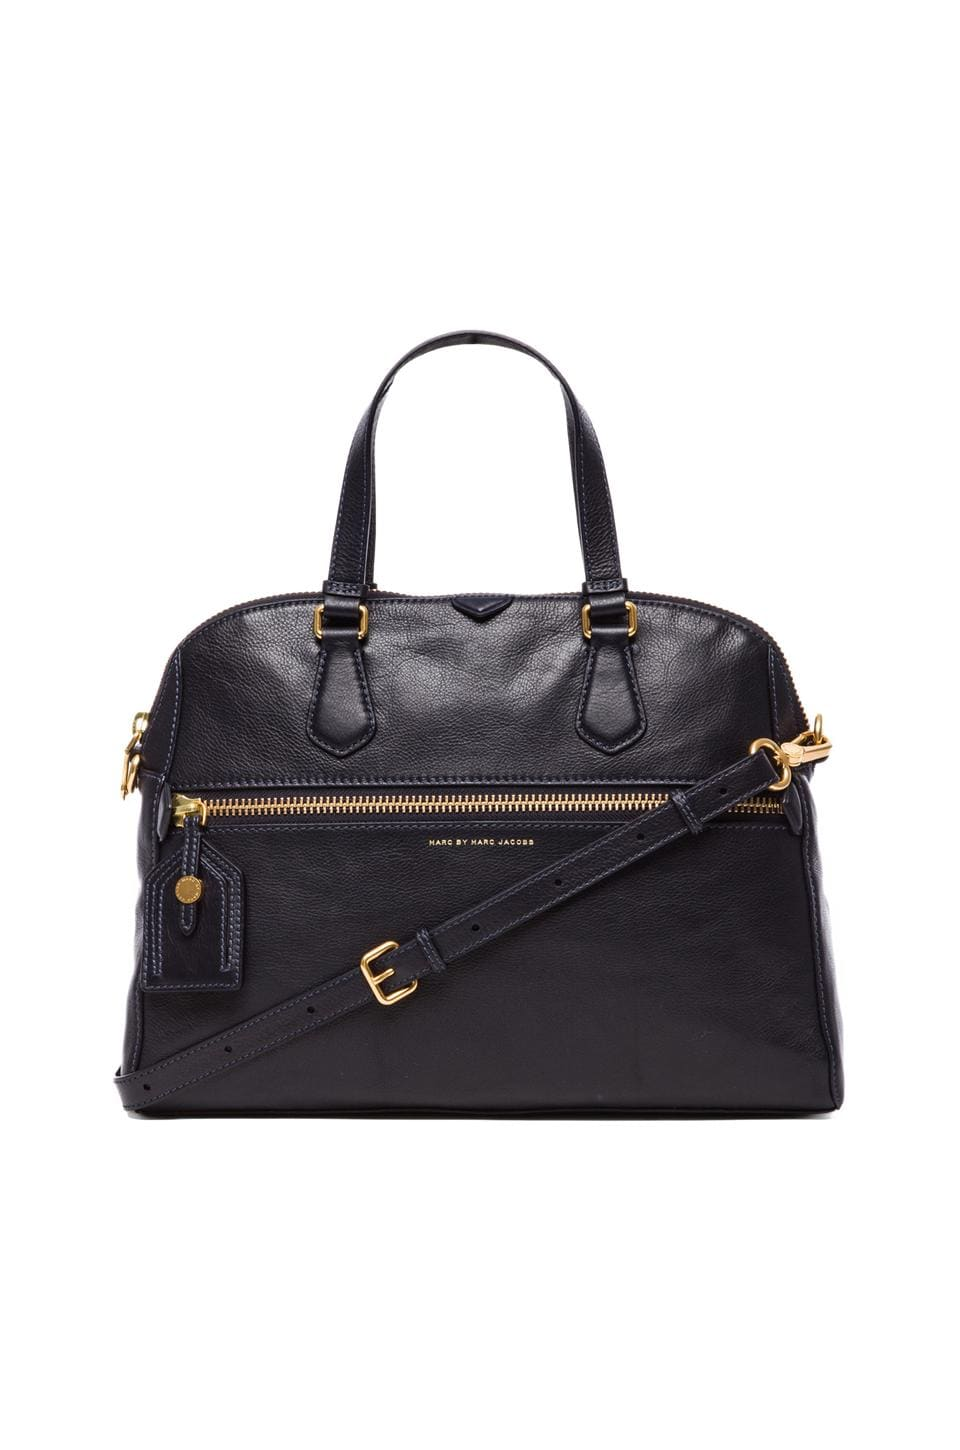 Marc by Marc Jacobs Globetrotter Calamity Rei Bag in Midnight Navy